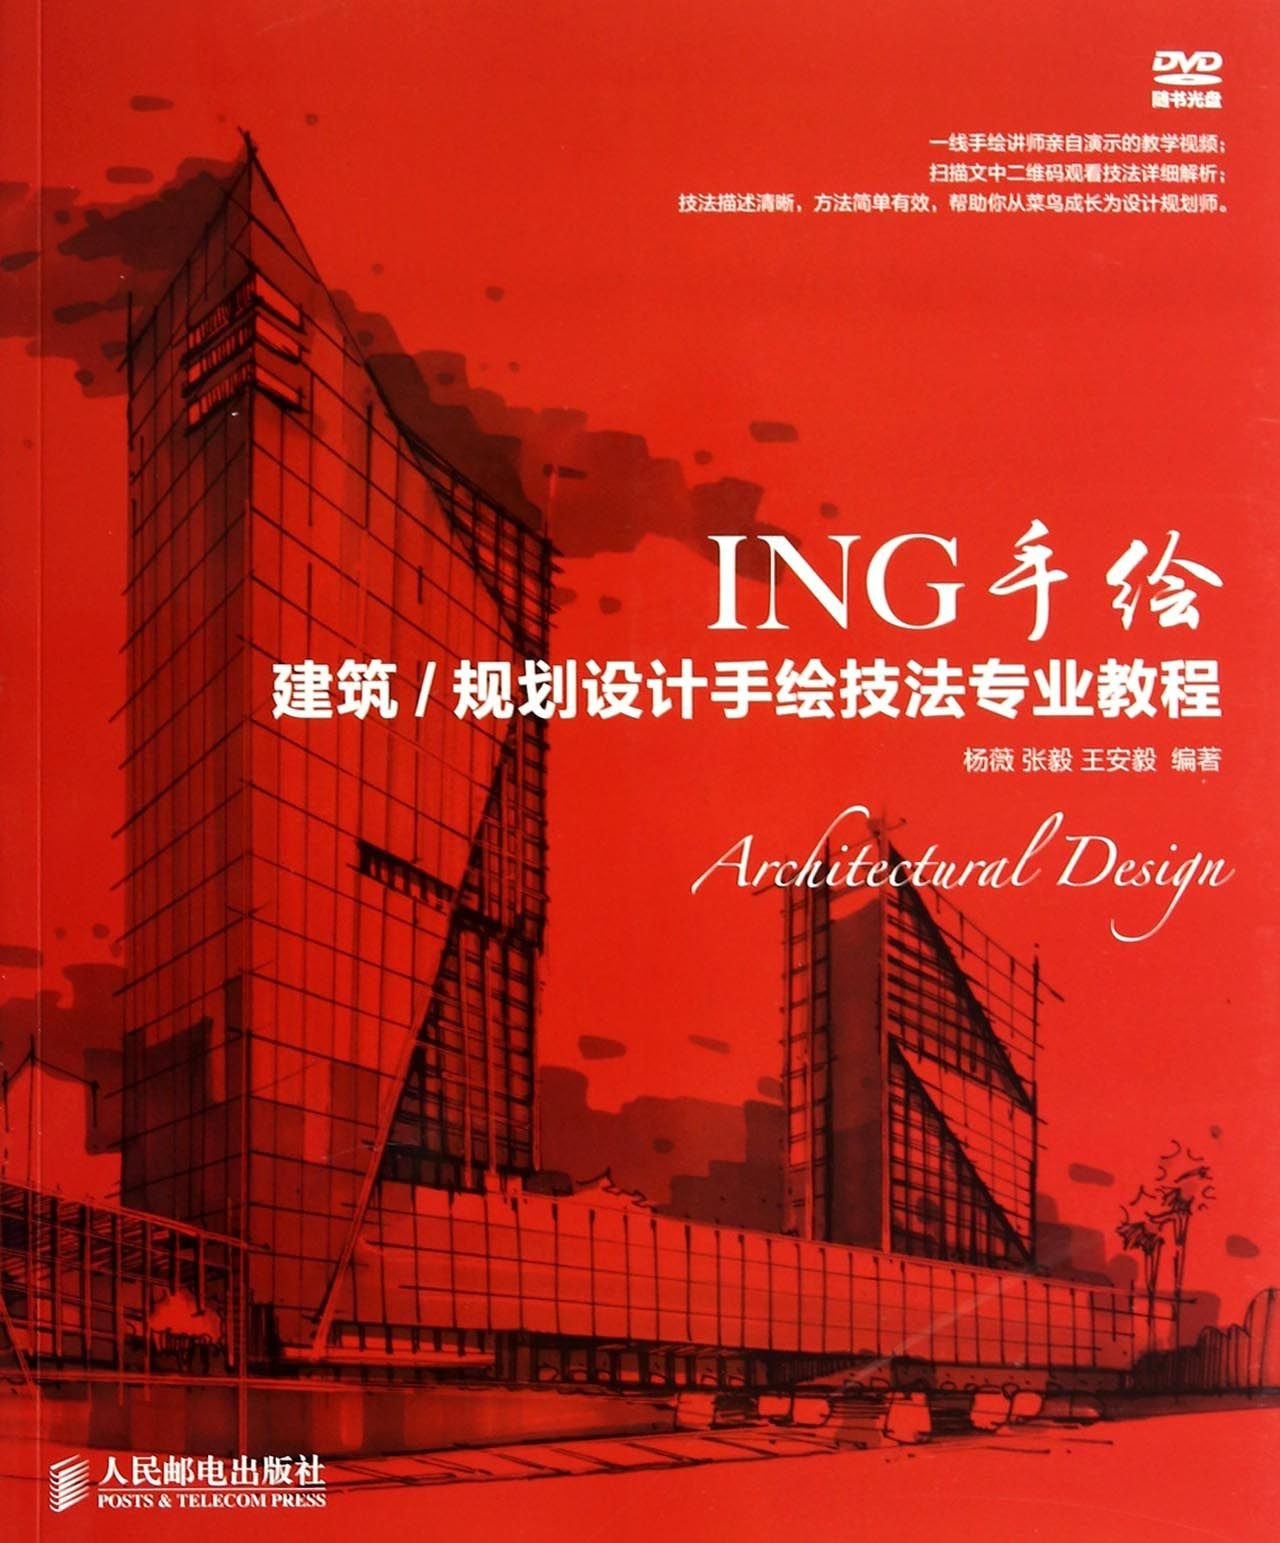 Read Online ING hand-painted - hand-painted techniques of professional architectural planning and design tutorials(Chinese Edition) pdf